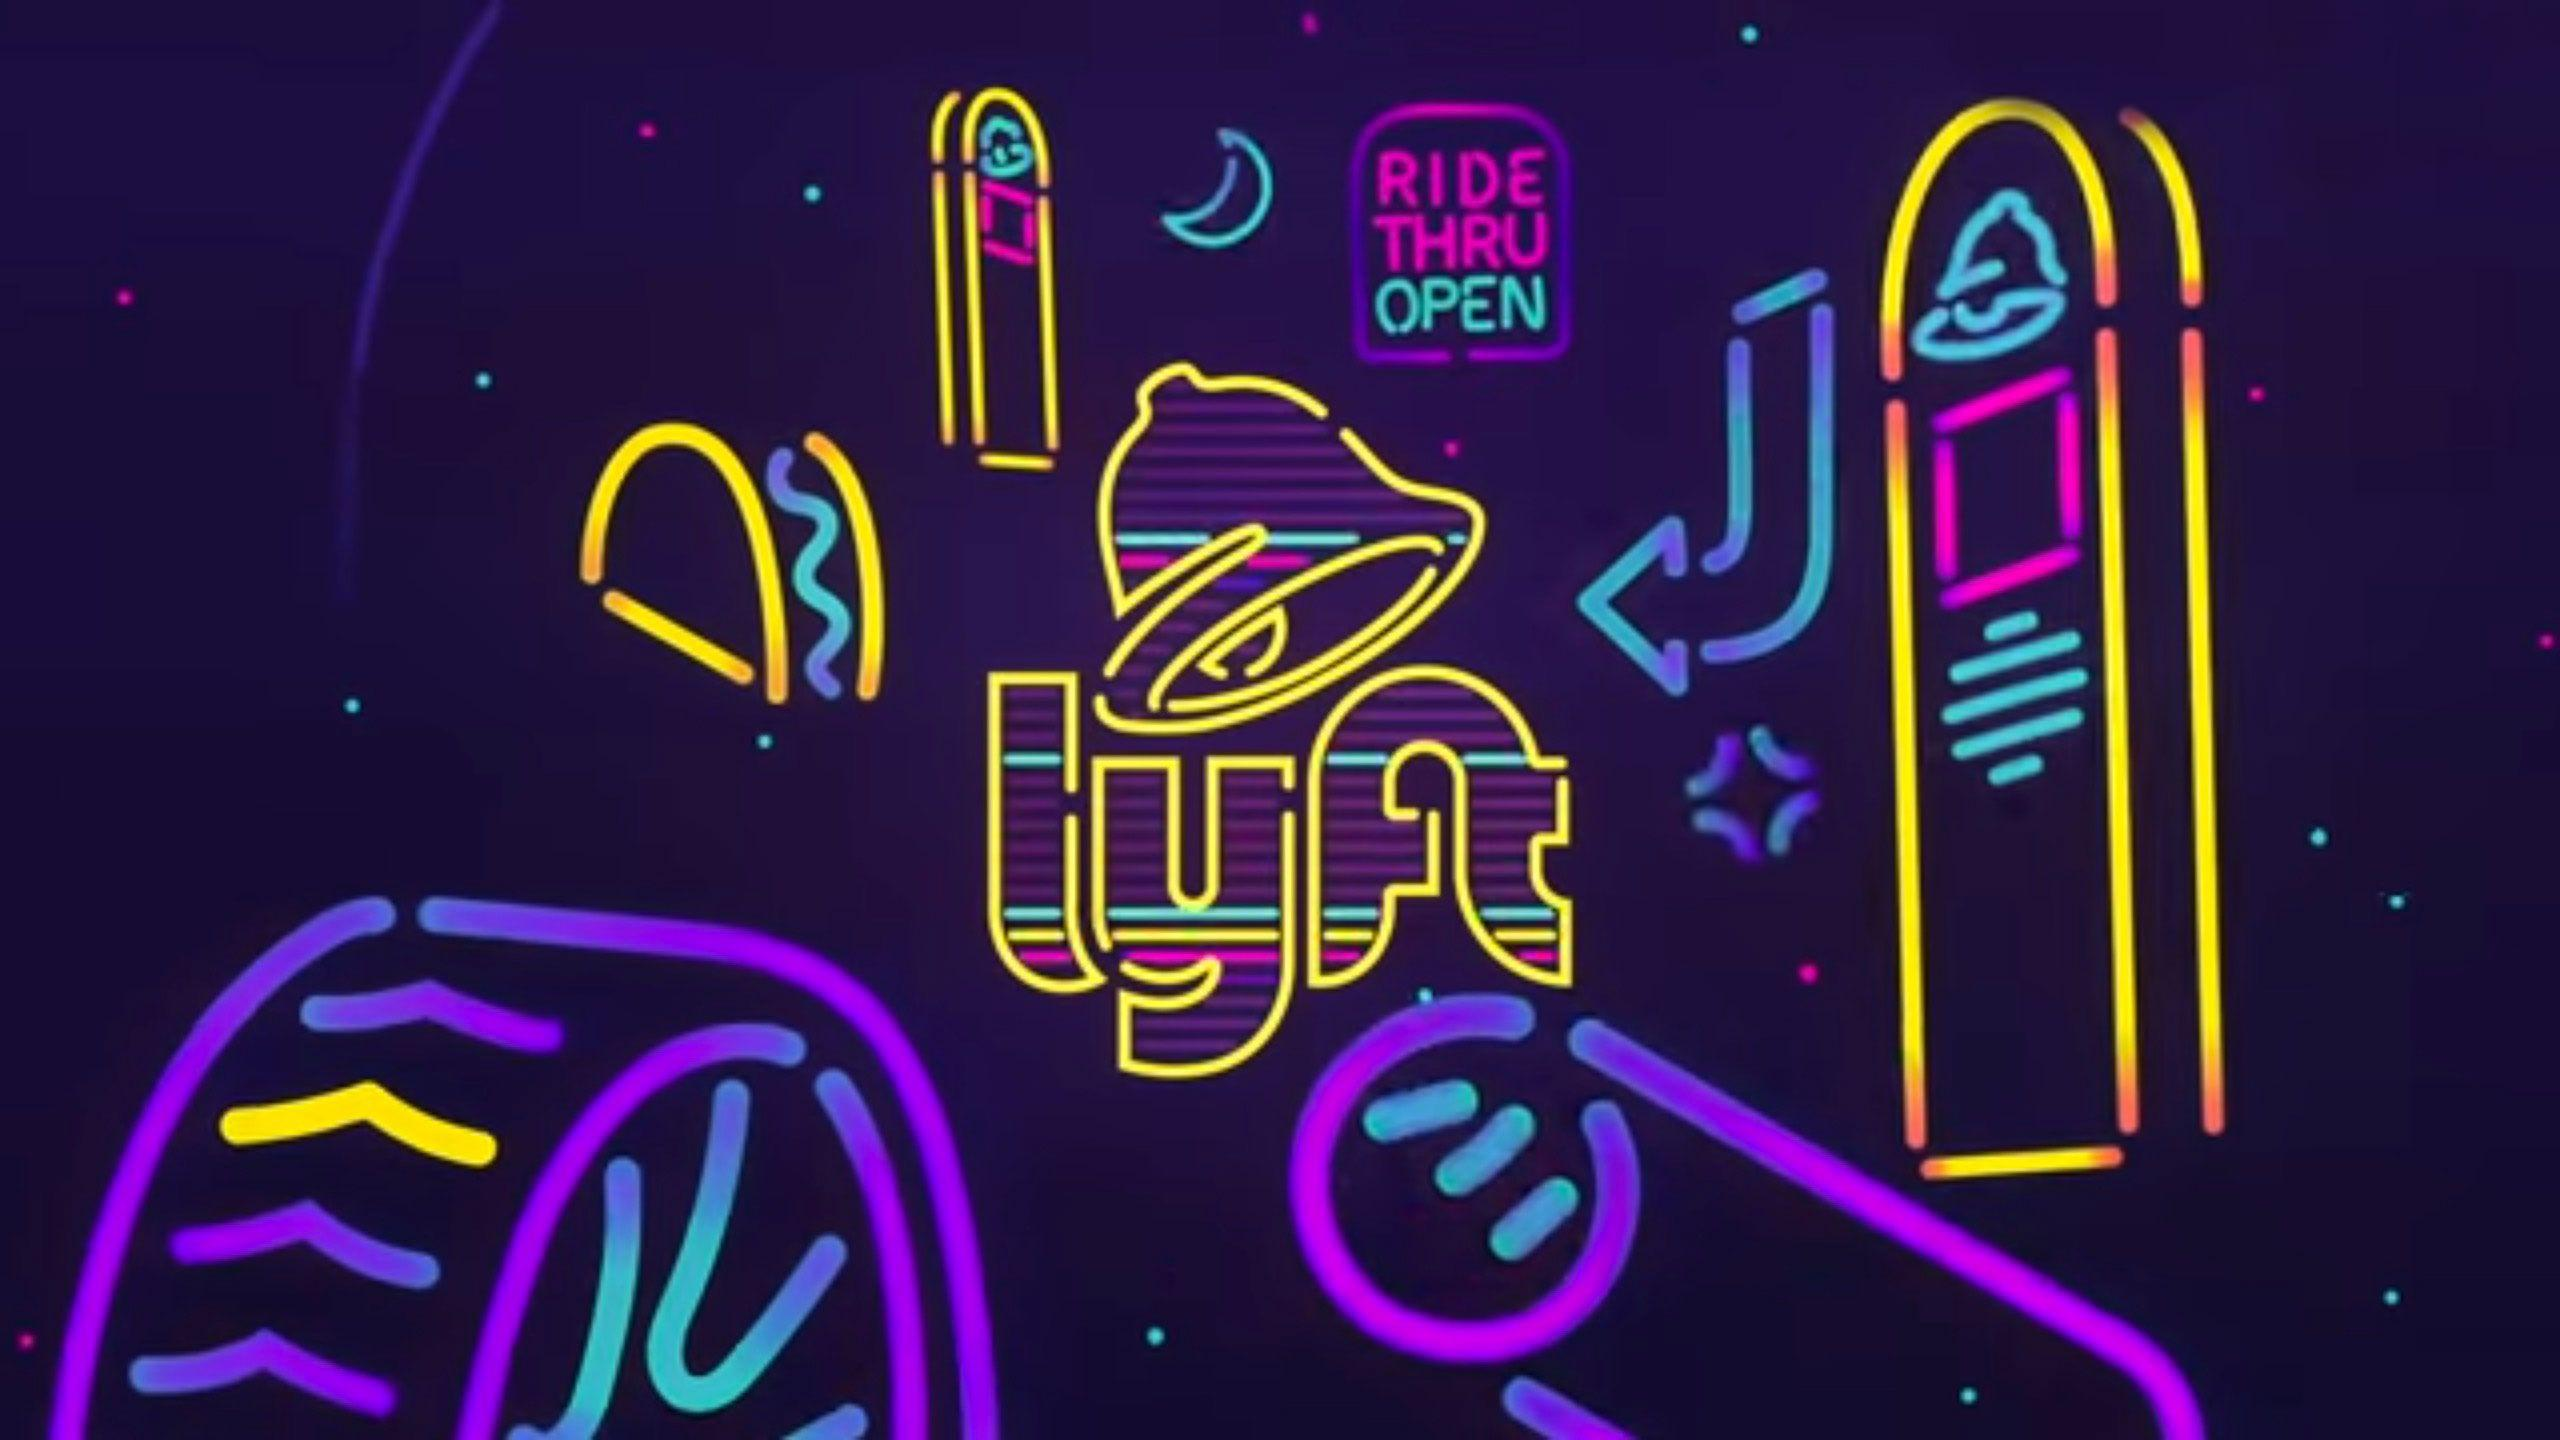 Lyft Brings Passengers to Taco Bell With New Taco Mode